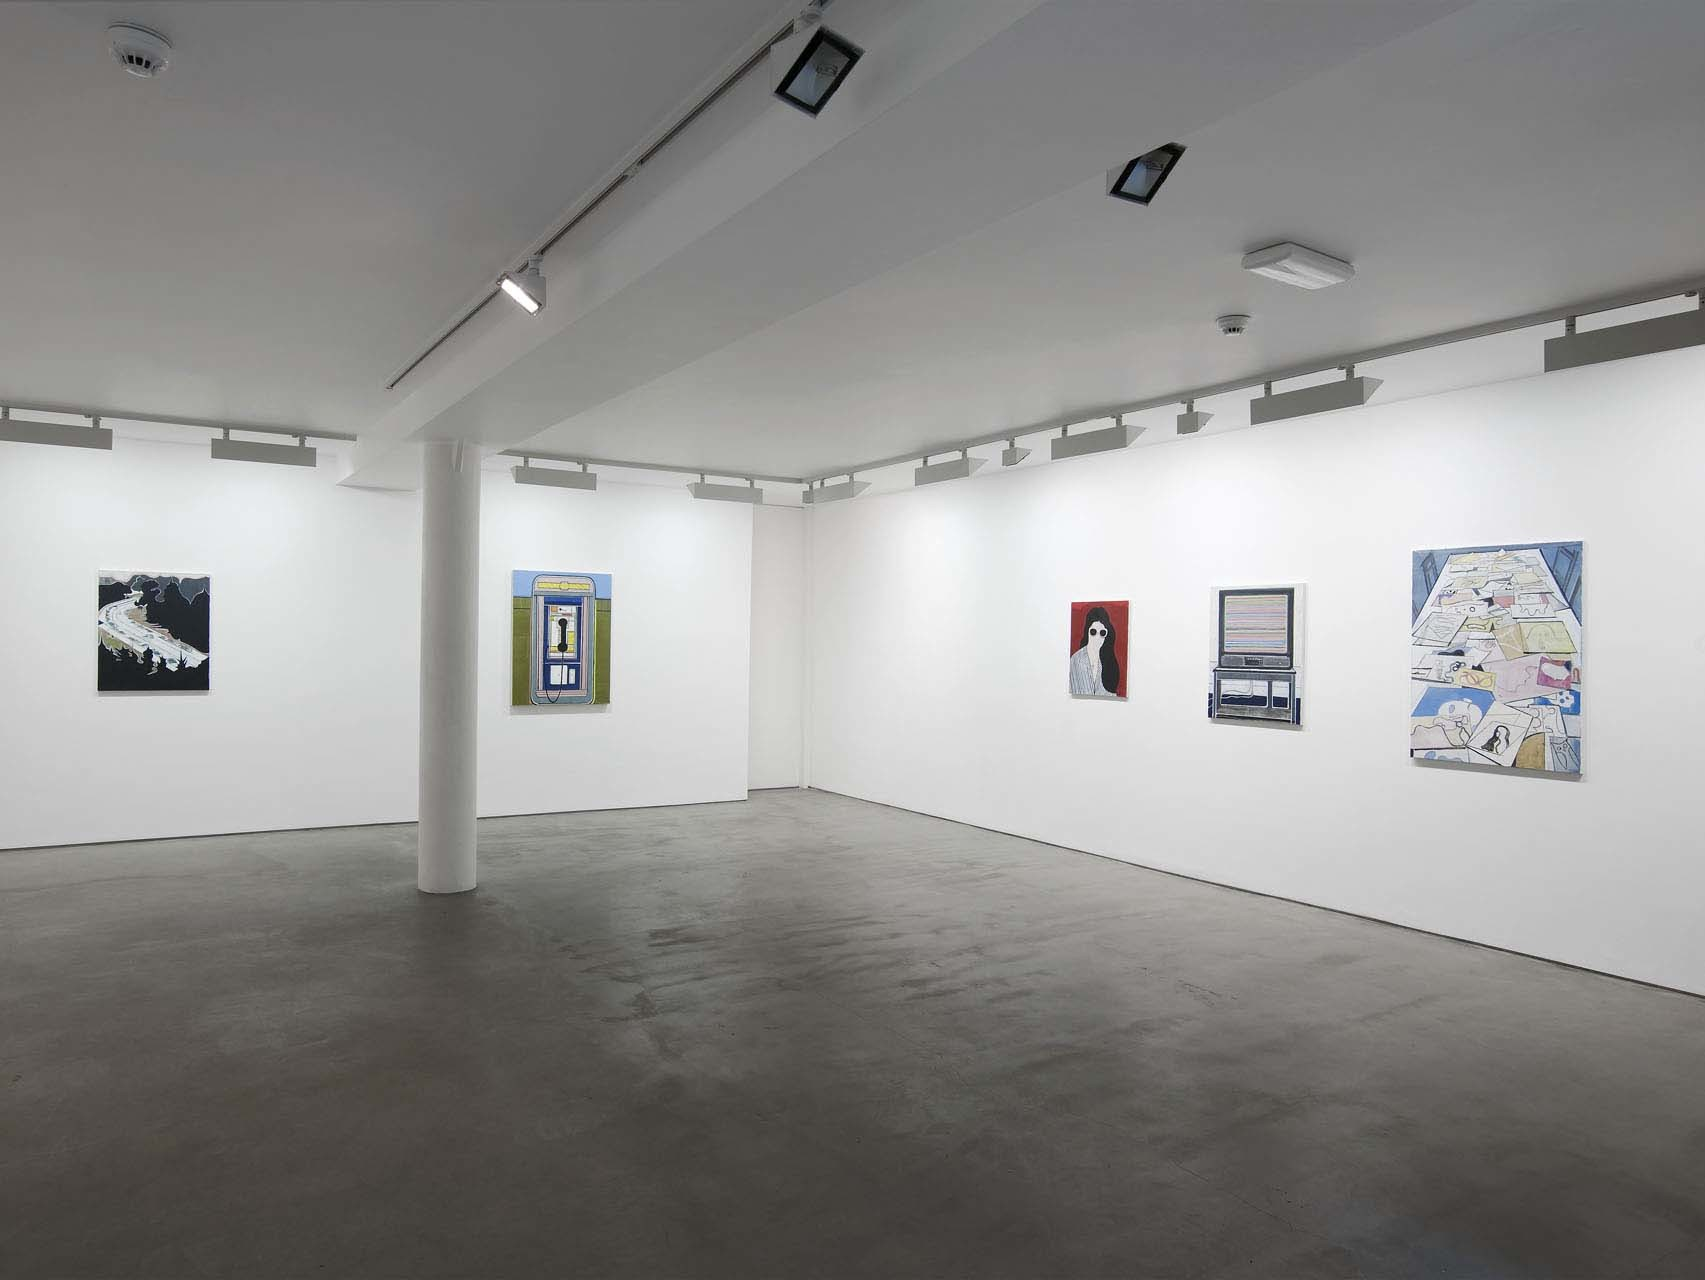 "<div class=""artwork_caption""><p>Installation View, 2010</p></div>"